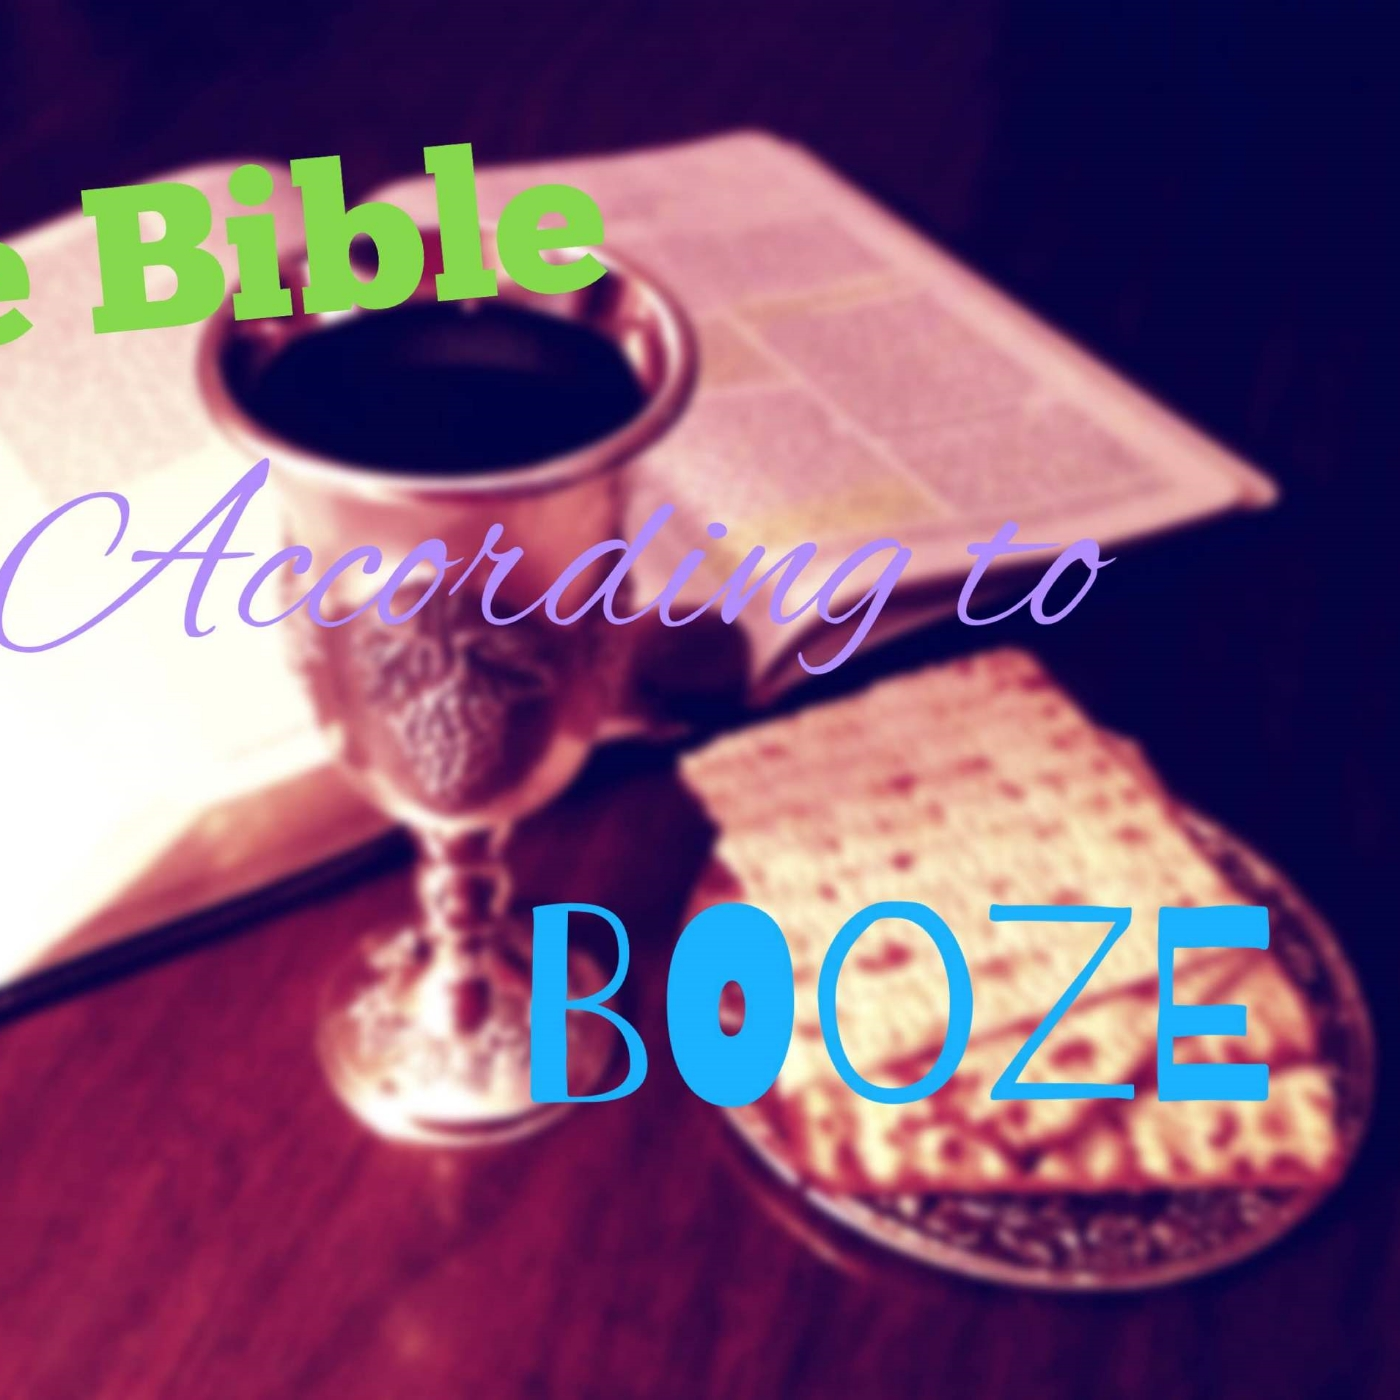 Podcast - The Bible According to Booze